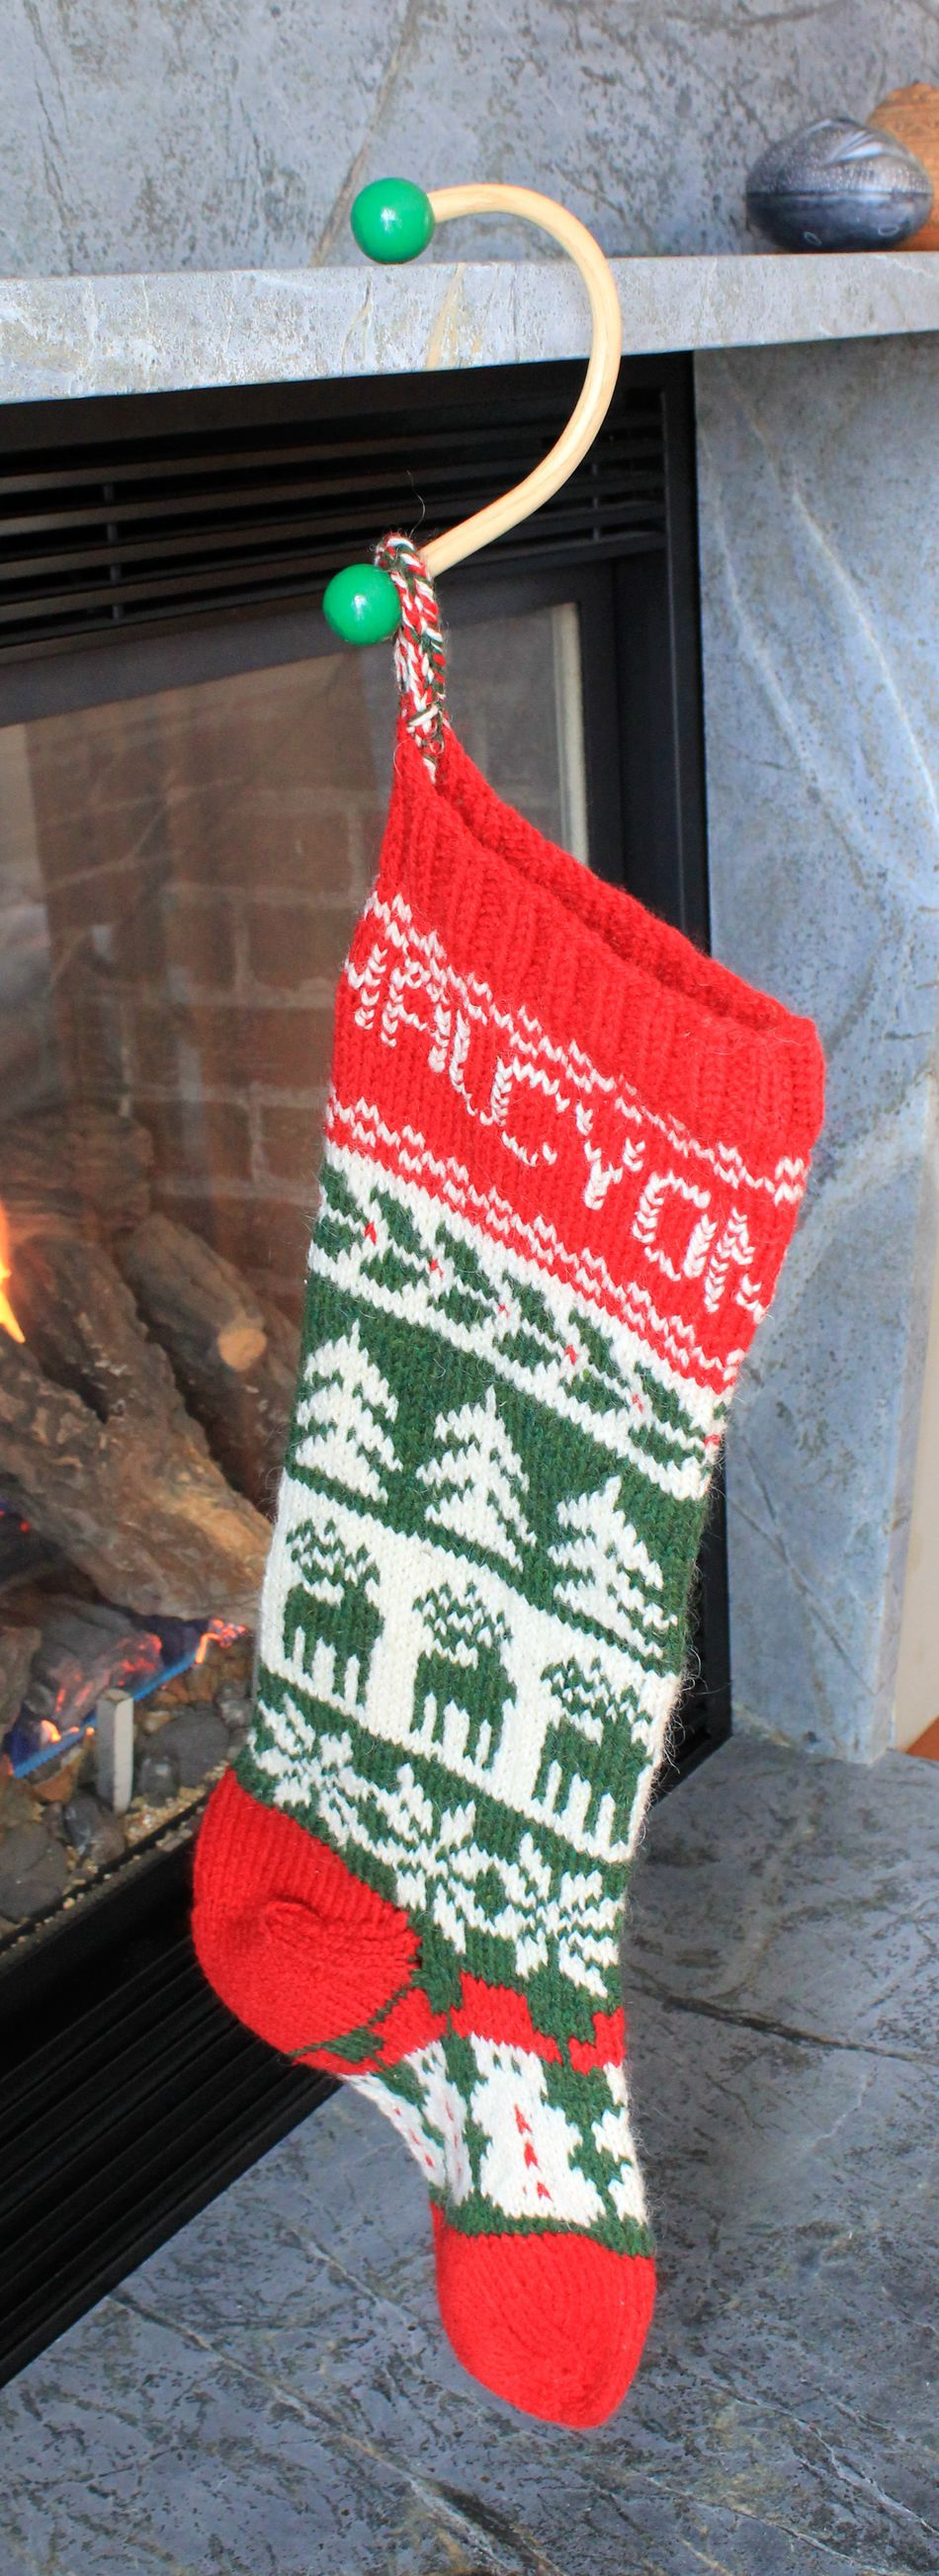 Sock hook evergreen knob christmas stocking holder dark